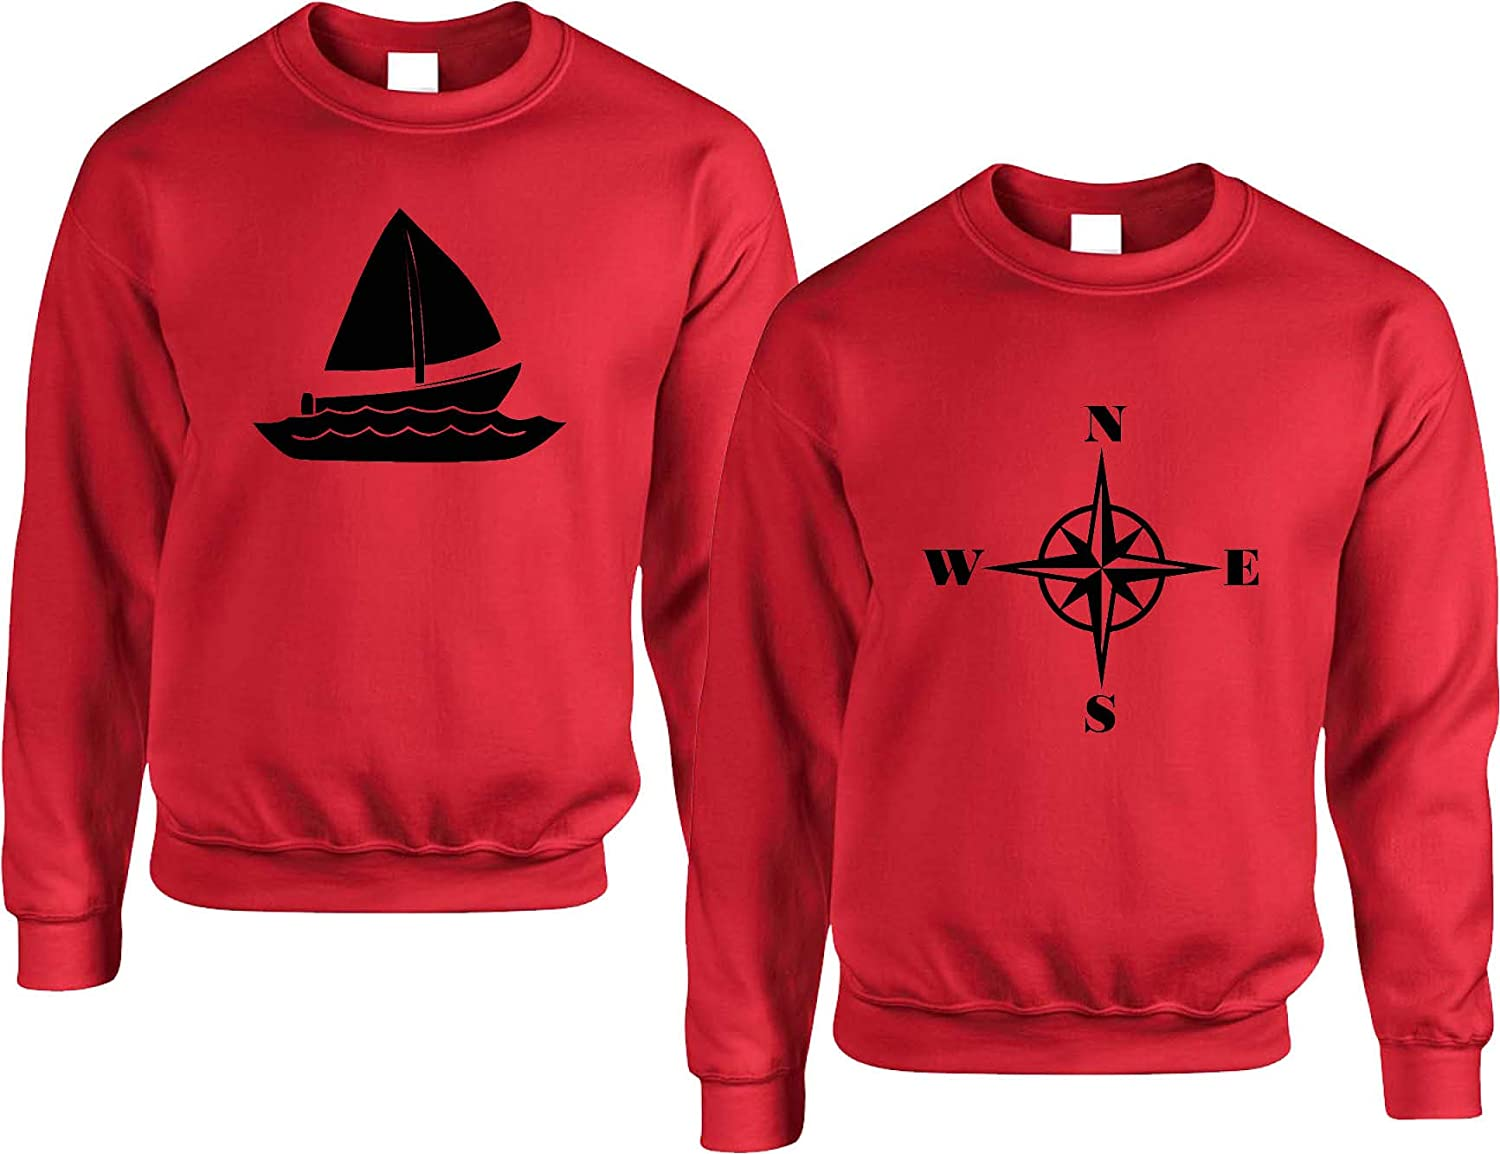 Allntrends Couple Sweatshirt Sailing Boat and Compass Matching Valentines Tops Womens S Mens M, Red